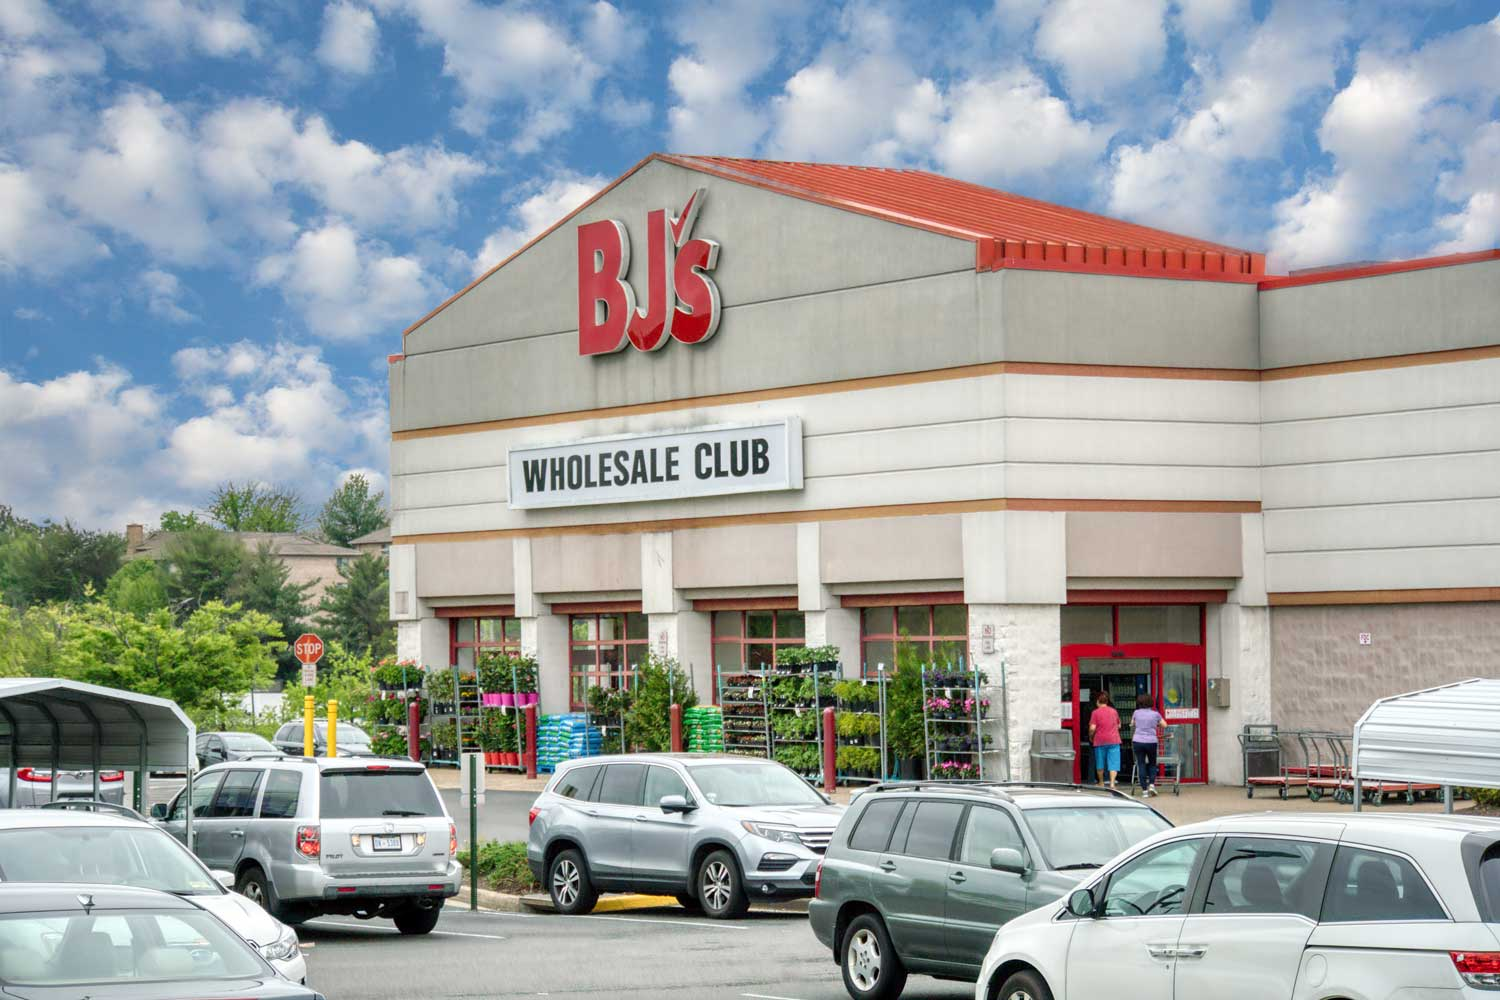 BJ's Wholesale Club is 10 minutes from Barcroft Plaza Apartments in Falls Church, VA